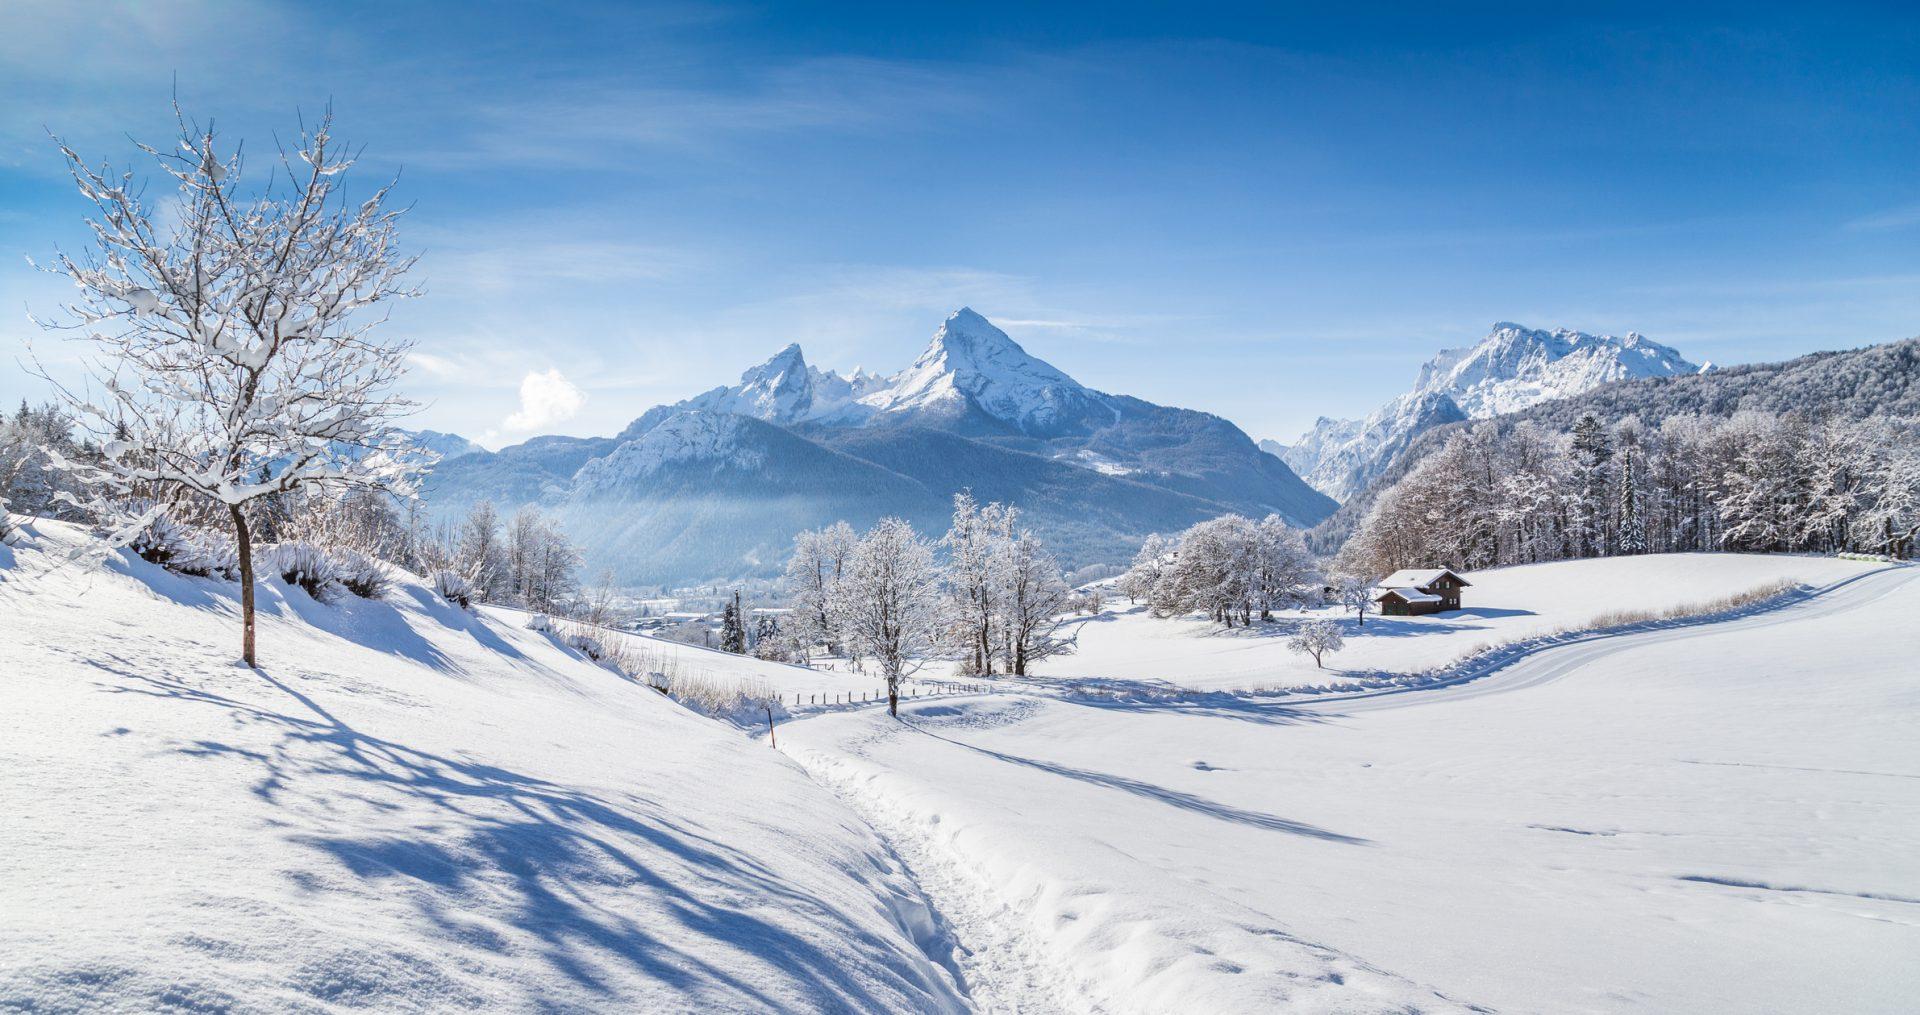 Winter wonderland scenery with hiking trail in the Alps